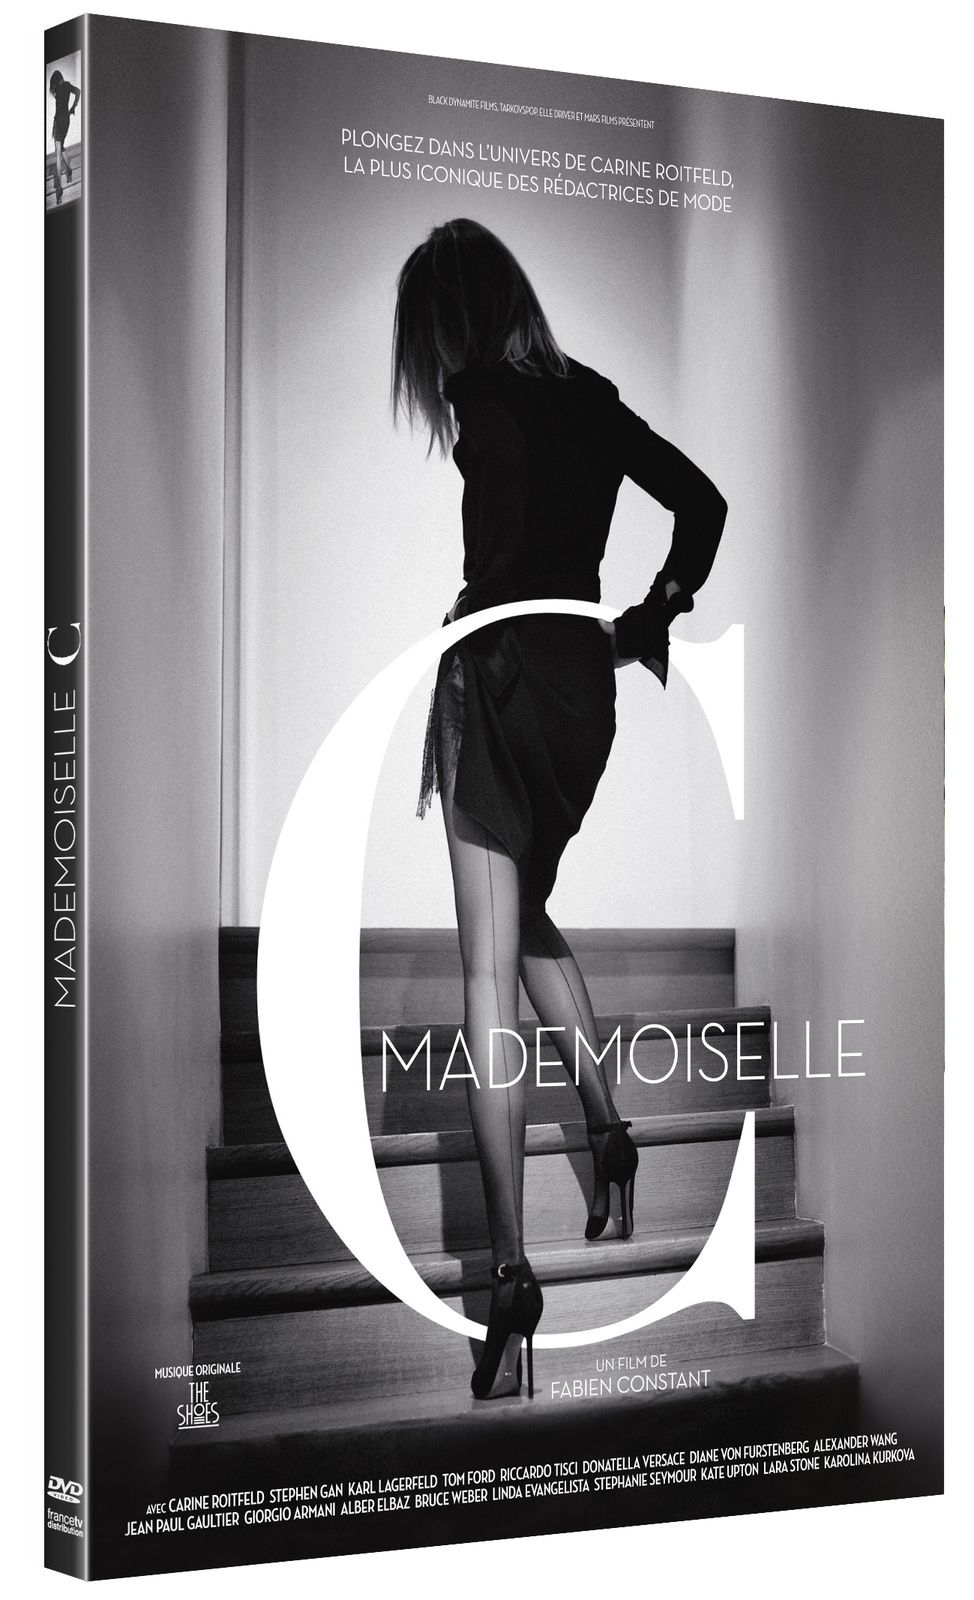 Mademoiselle C (giveaway inside)